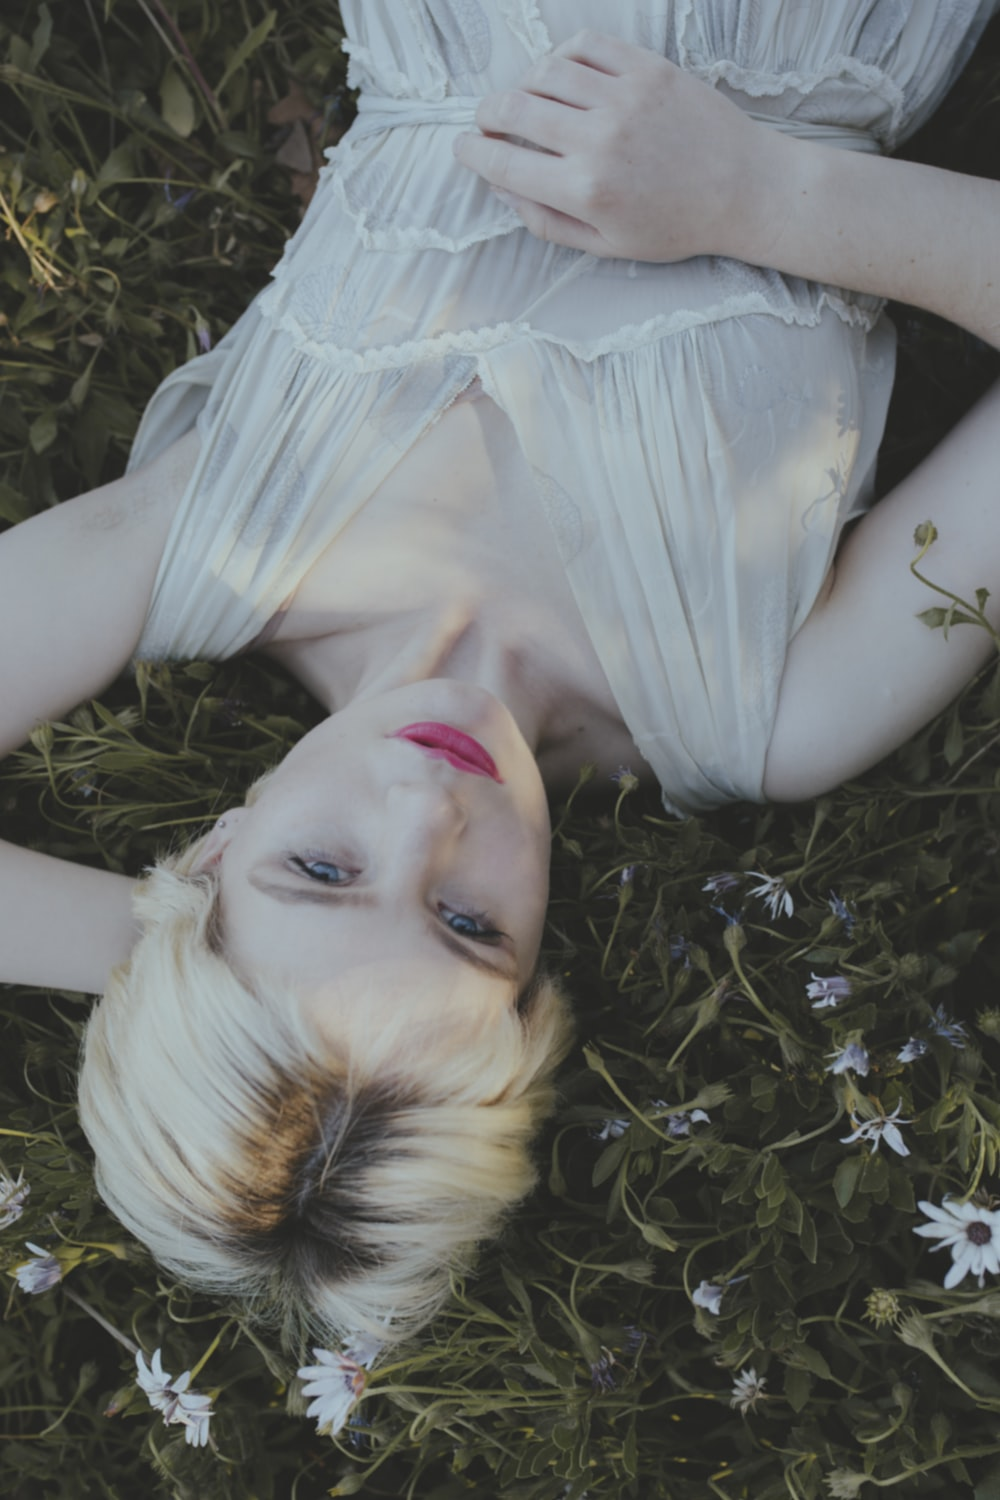 woman in white dress lying on green grass